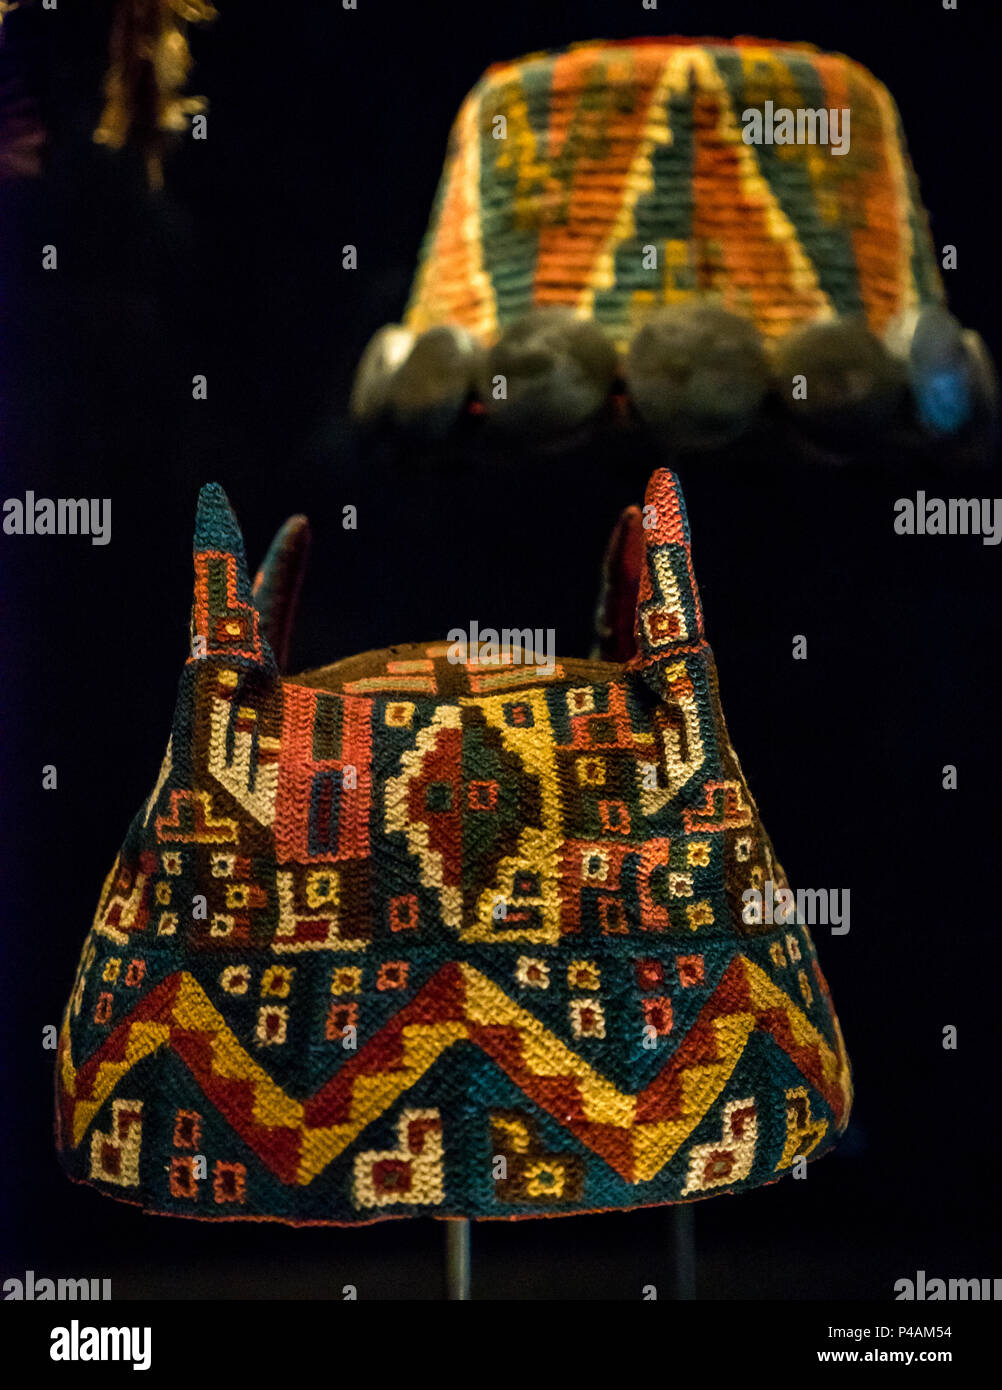 Colourful truncated conical wool hats worn by Altiplano tribes, museum display, Chilean Museum of Pre-Colombian Art, Santiago, Chile, South America - Stock Image